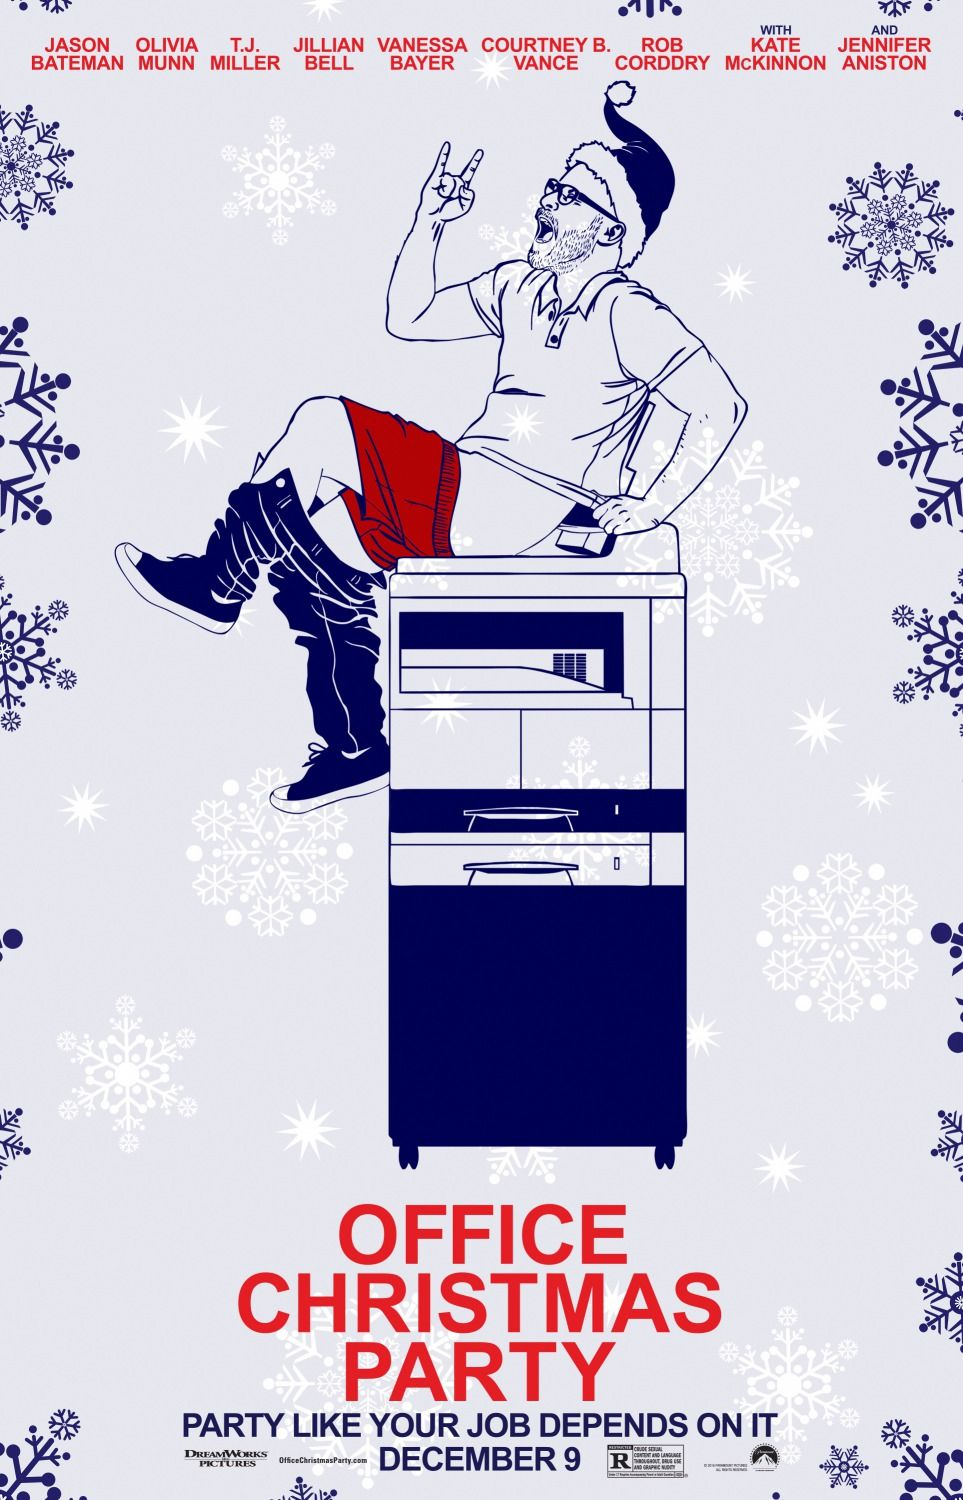 Office Christmas Party Poster 2 | Posters | Pinterest | Office ...